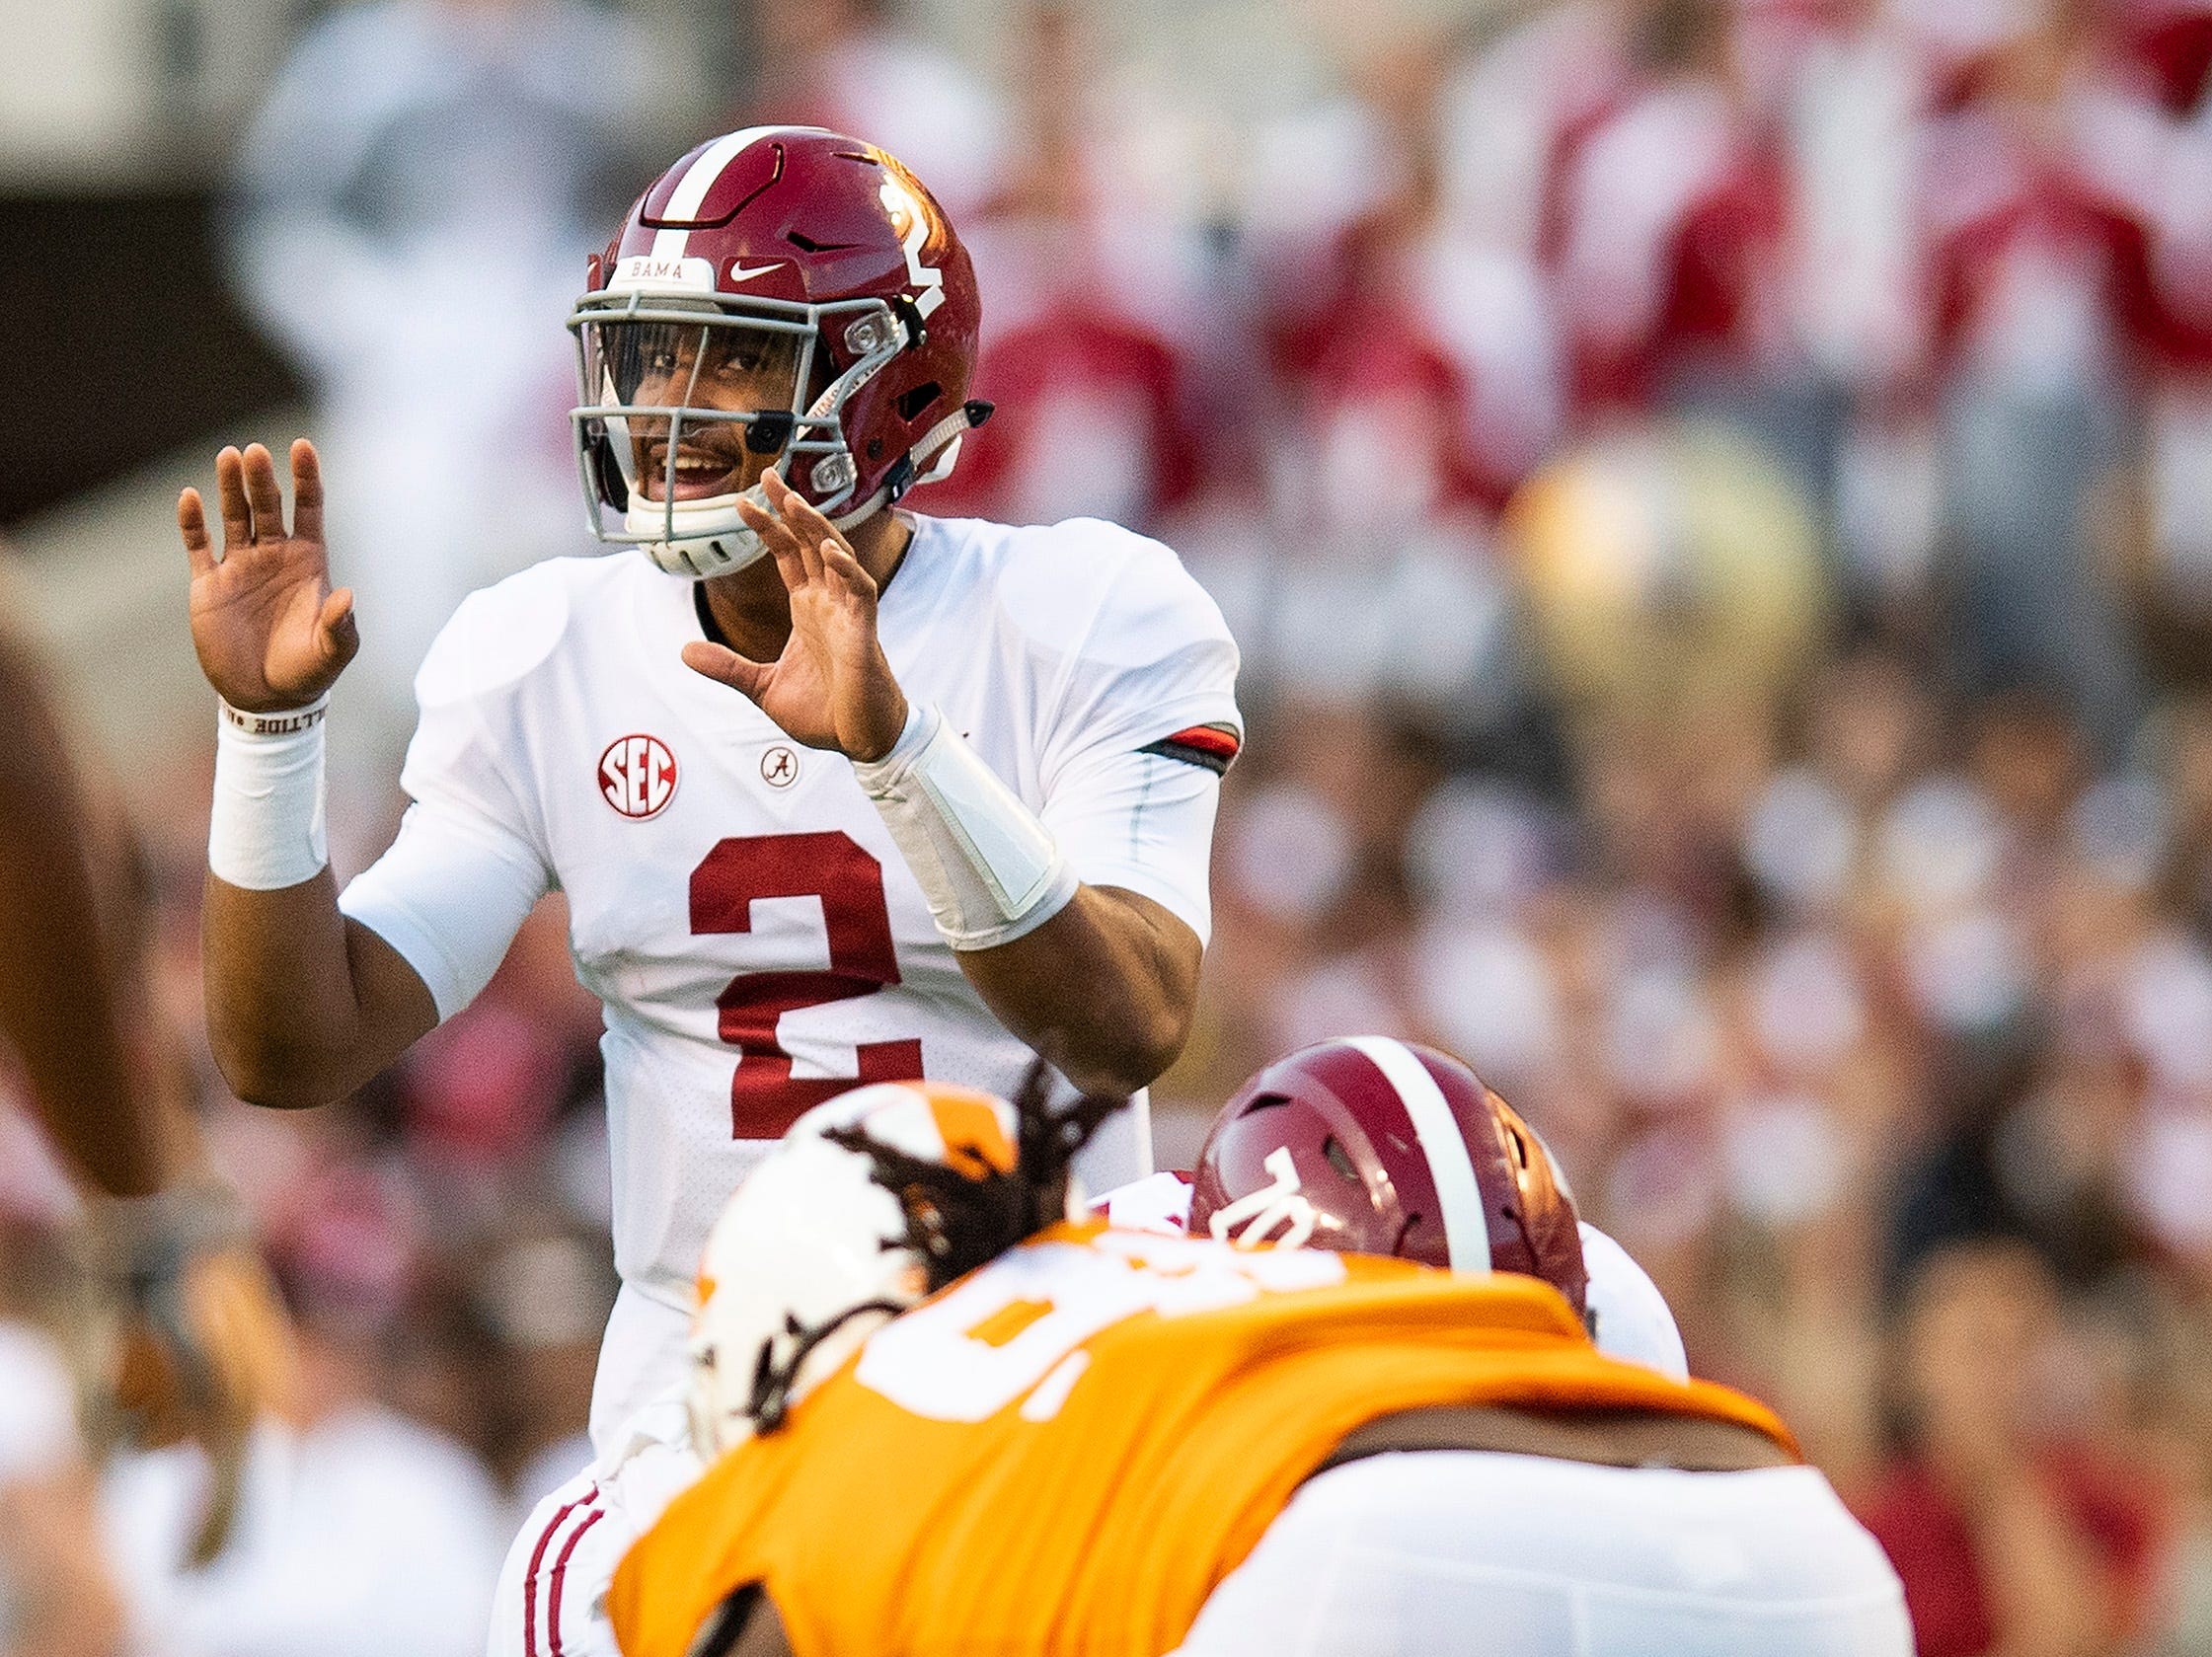 Alabama quarterback Jalen Hurts (2) direct from under center against Tennessee in second half action at Neyland Stadium in Knoxville, Tn., on Saturday October 20, 2018.